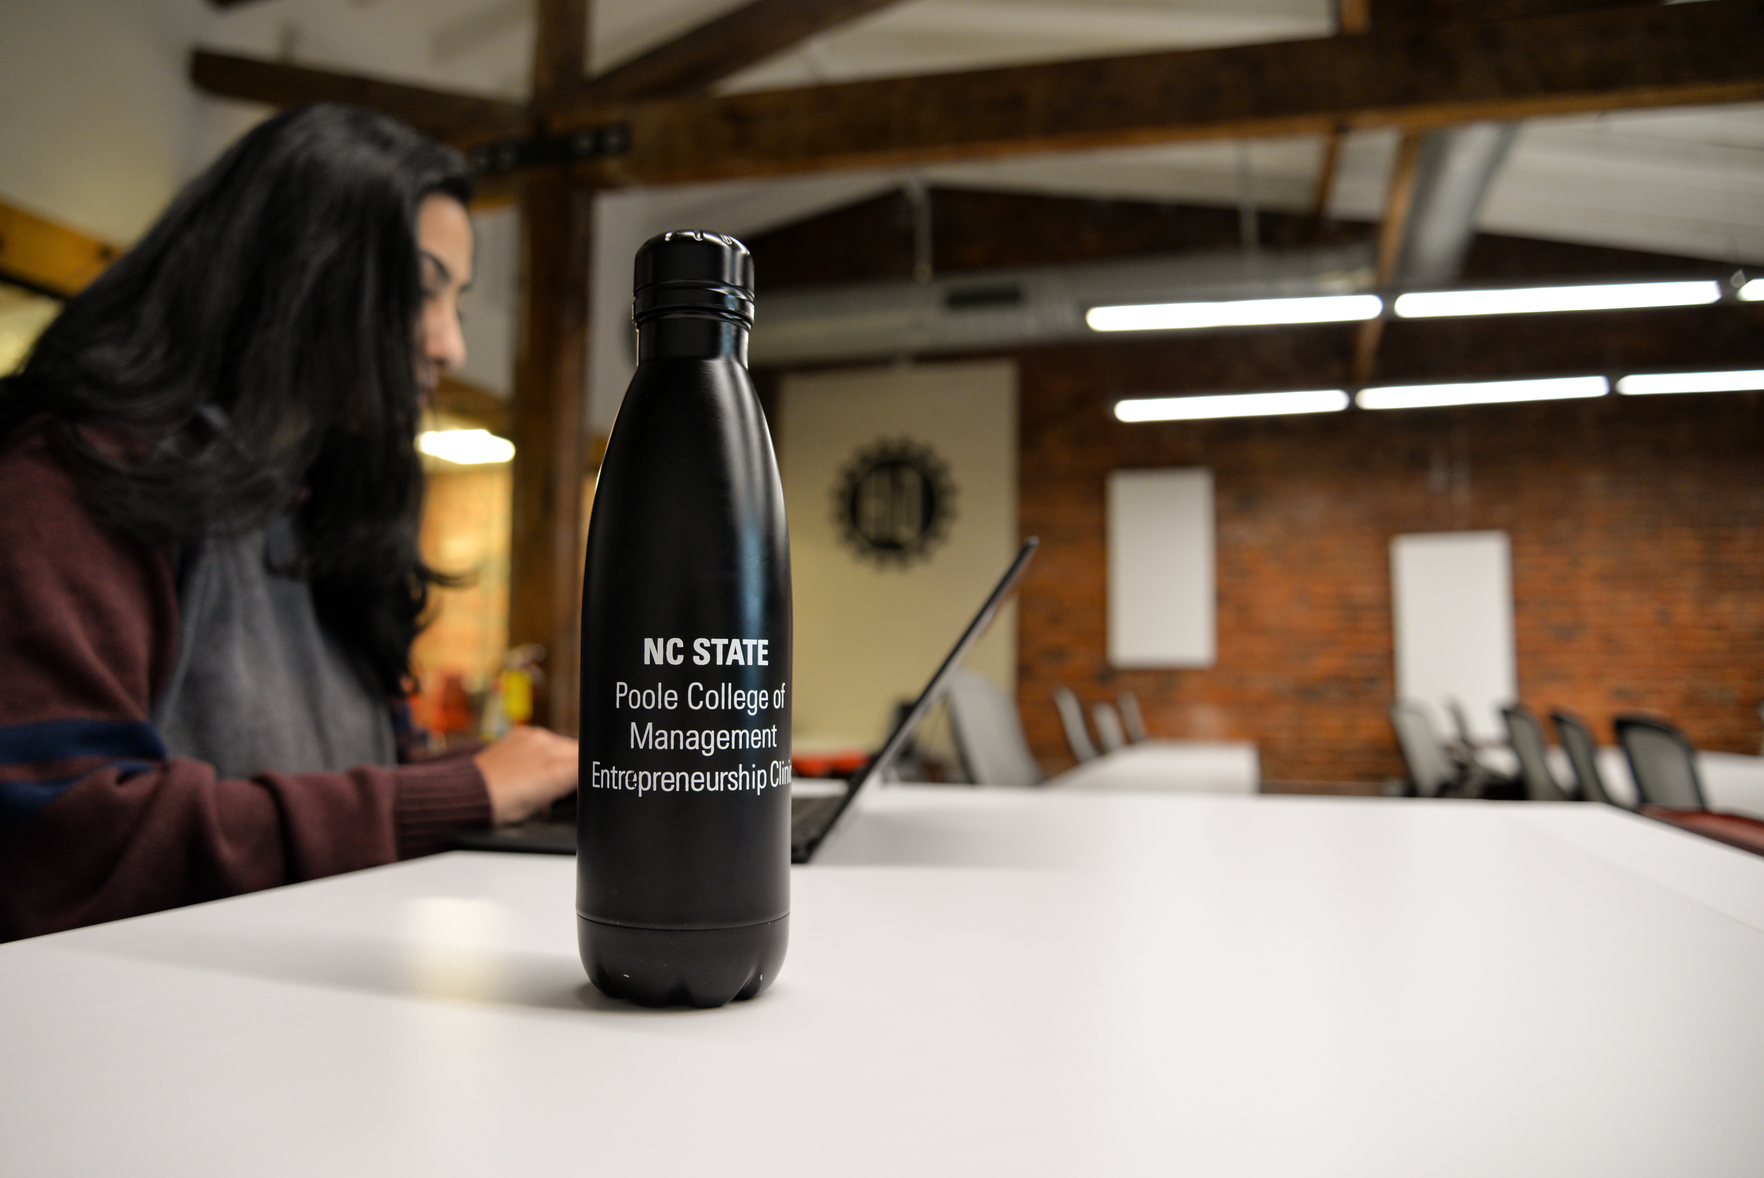 Poole College of Management E-Clinic Water bottle